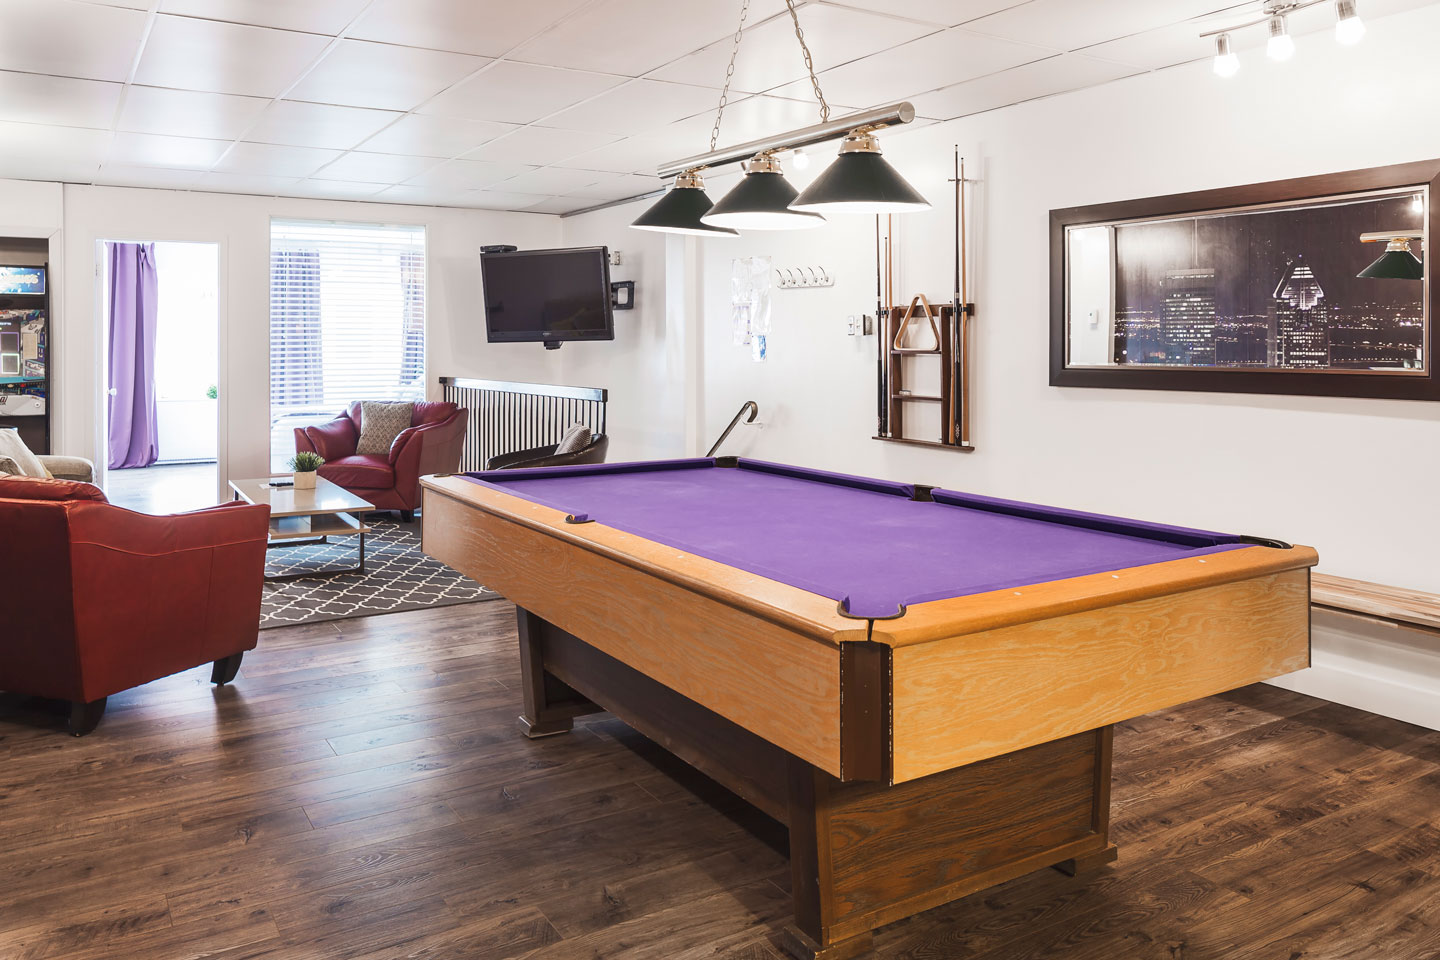 Entertainer: pool table